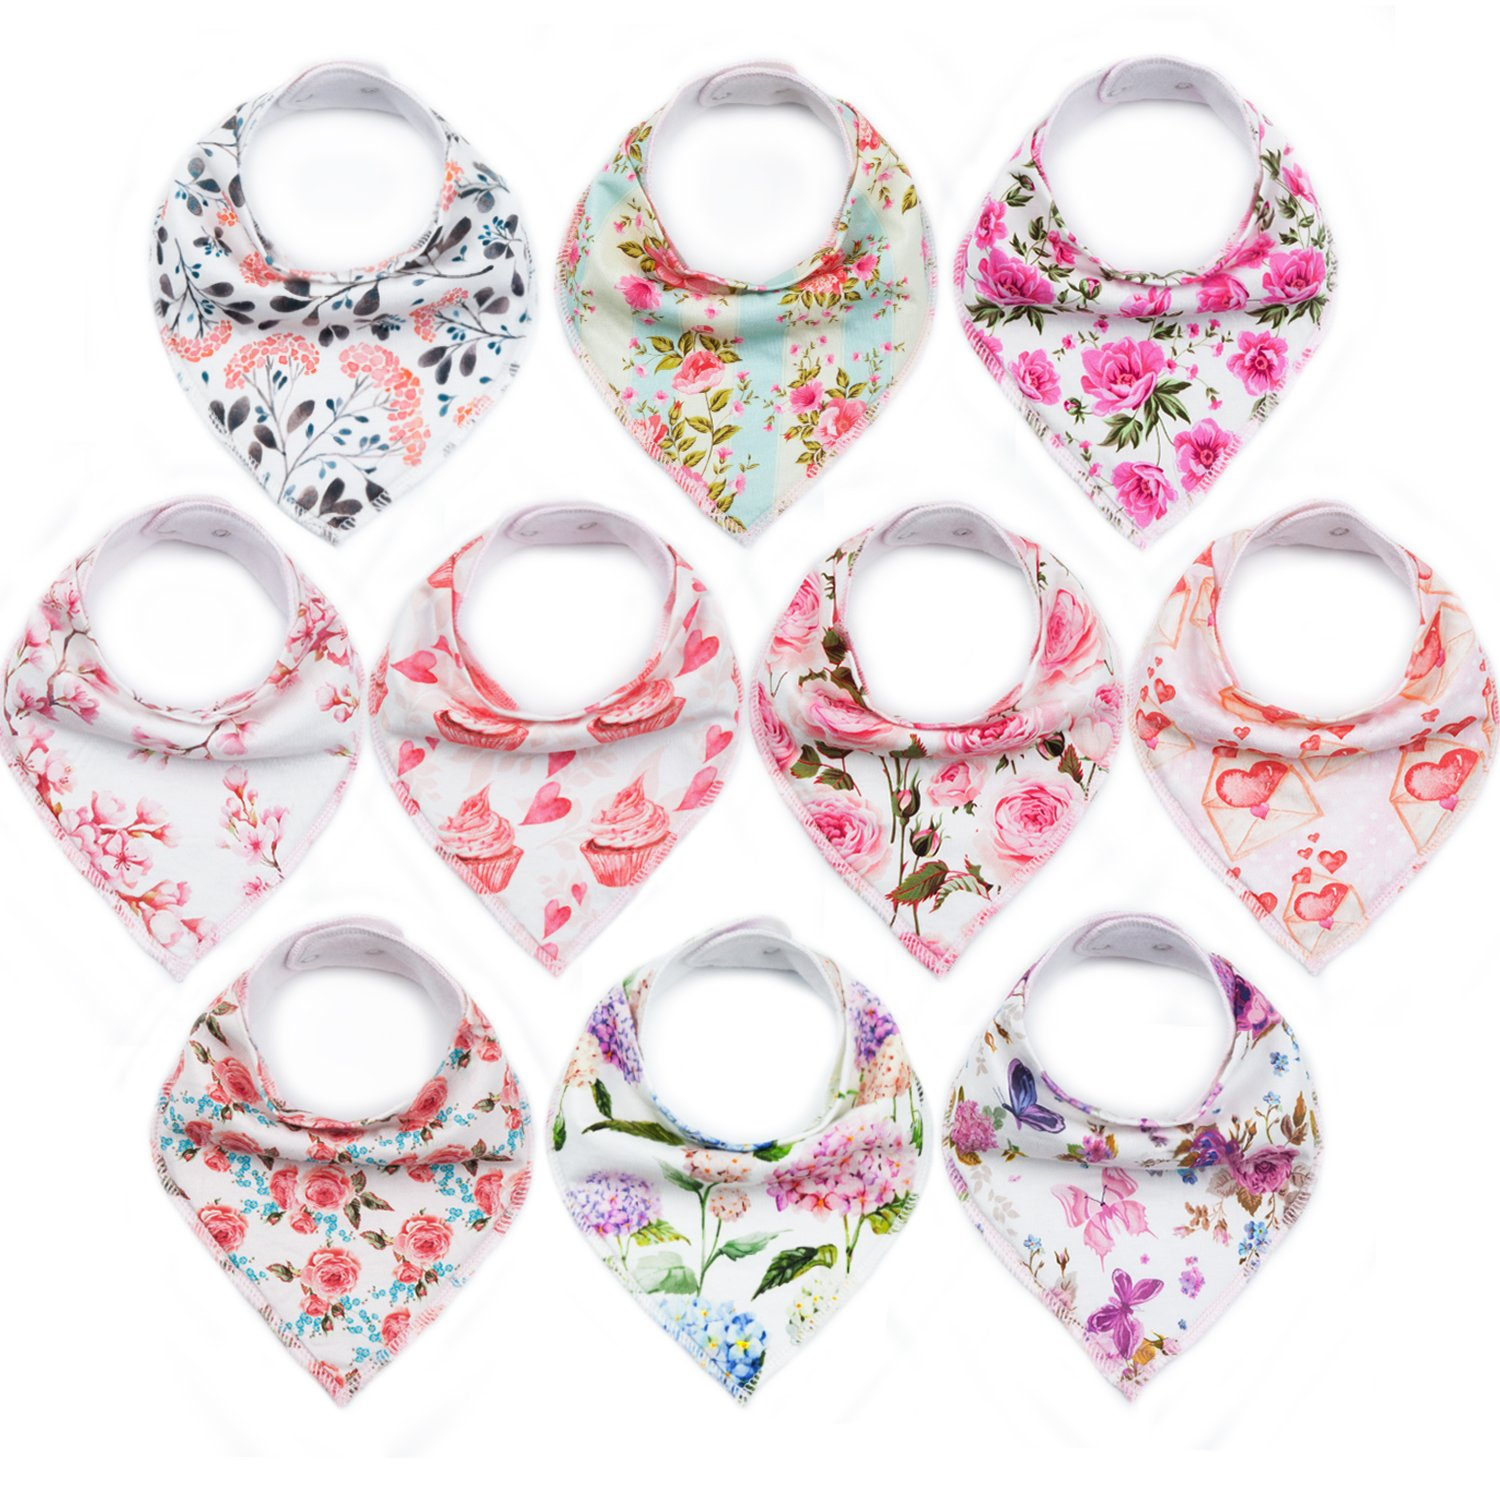 10-Pack Baby Bandana Bibs Upsimples Baby Girl Bibs for Drooling and Teething, Super Absorbent Bibs Baby Shower Gift - Blossom Set